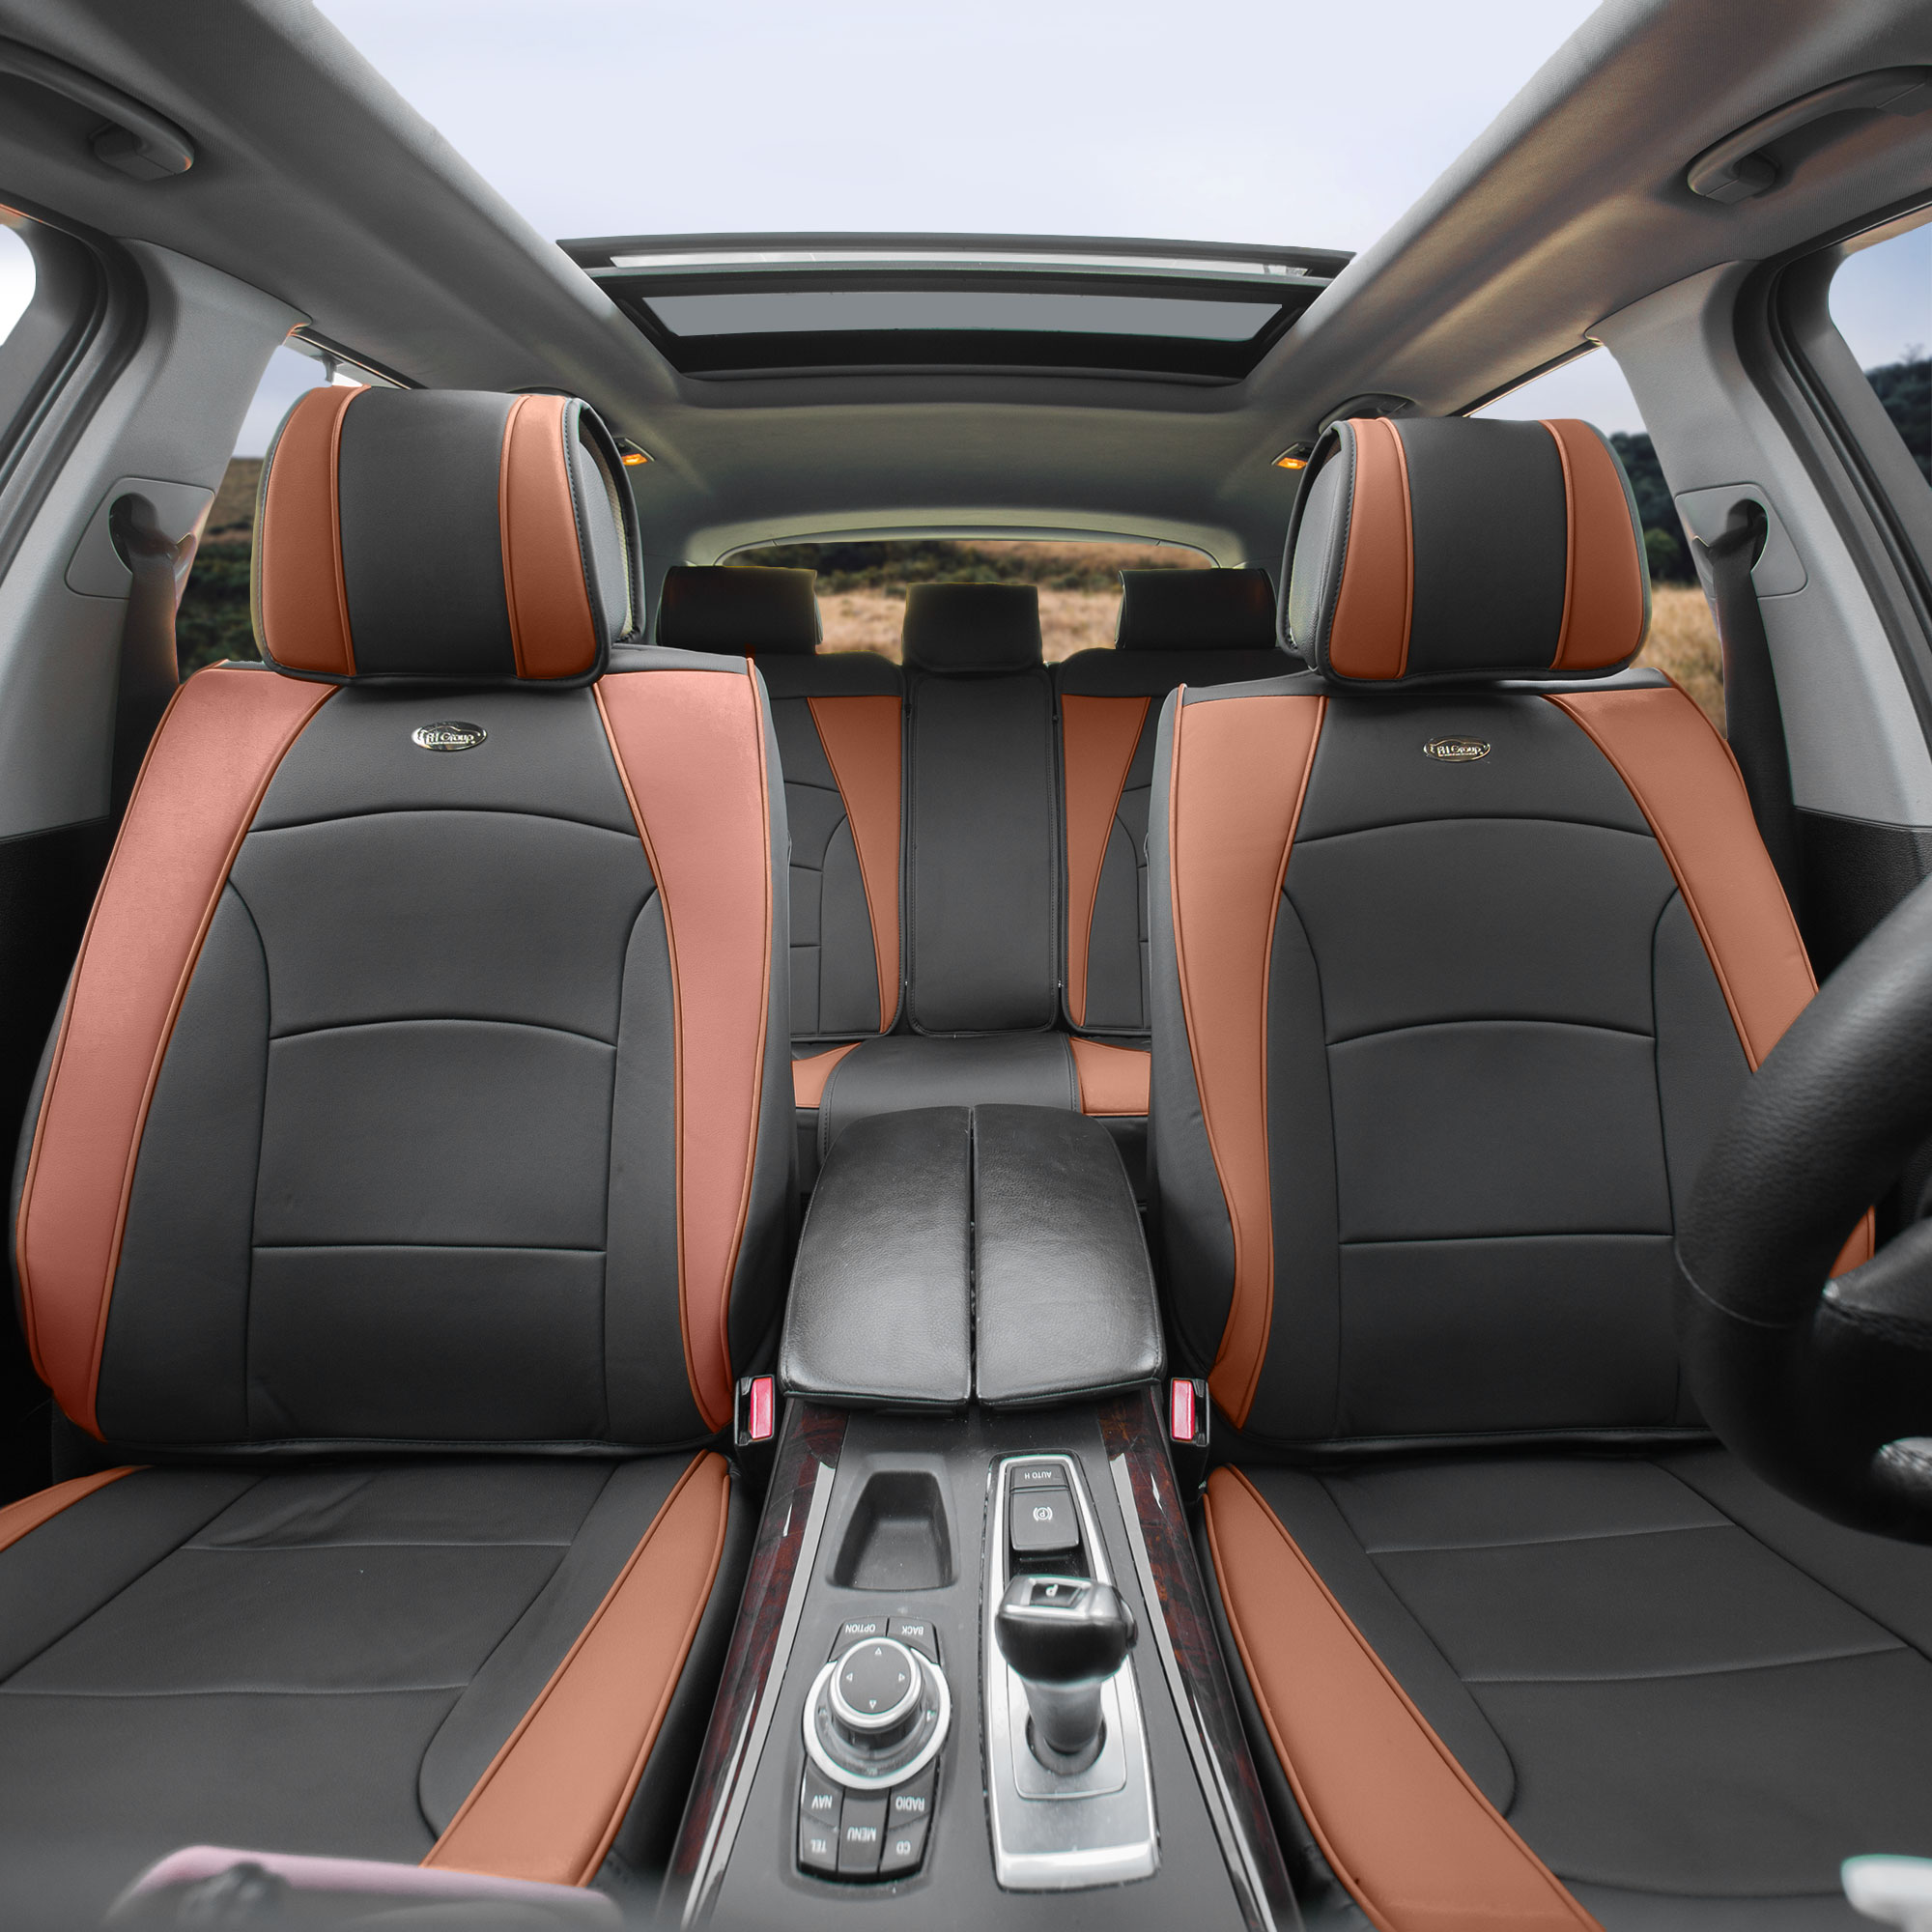 Car SUV Truck PU Leather Seat Cushion Covers 5 Seat Full Set Seats Black White with Black Dash Mat